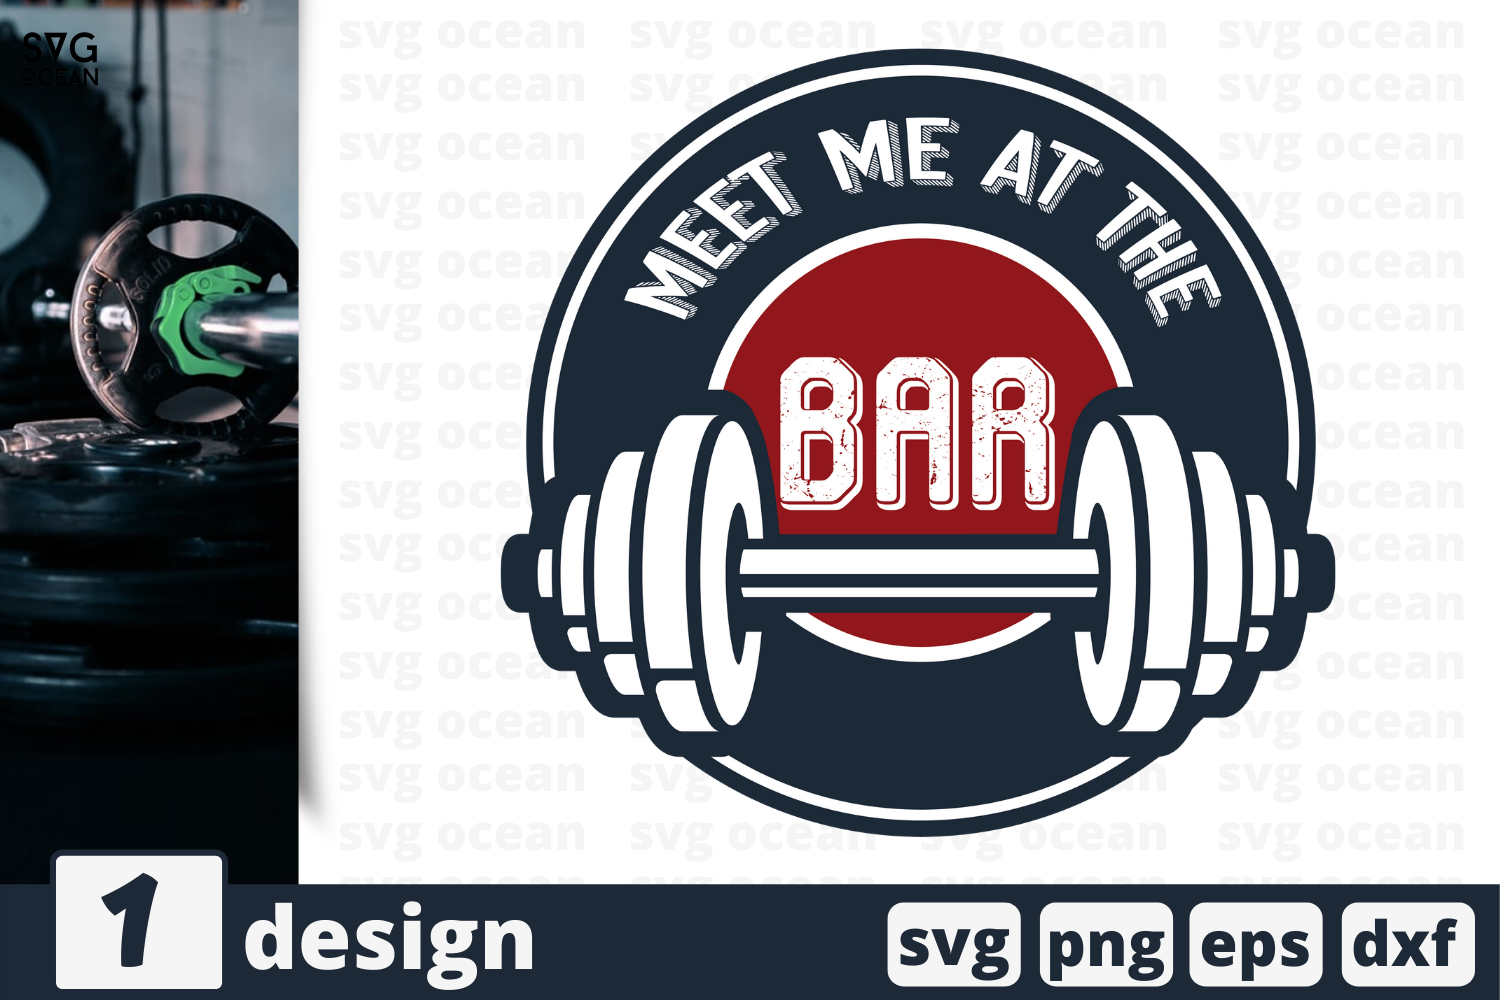 Download Free Meet Me At The Bar Quote Graphic By Svgocean Creative Fabrica for Cricut Explore, Silhouette and other cutting machines.